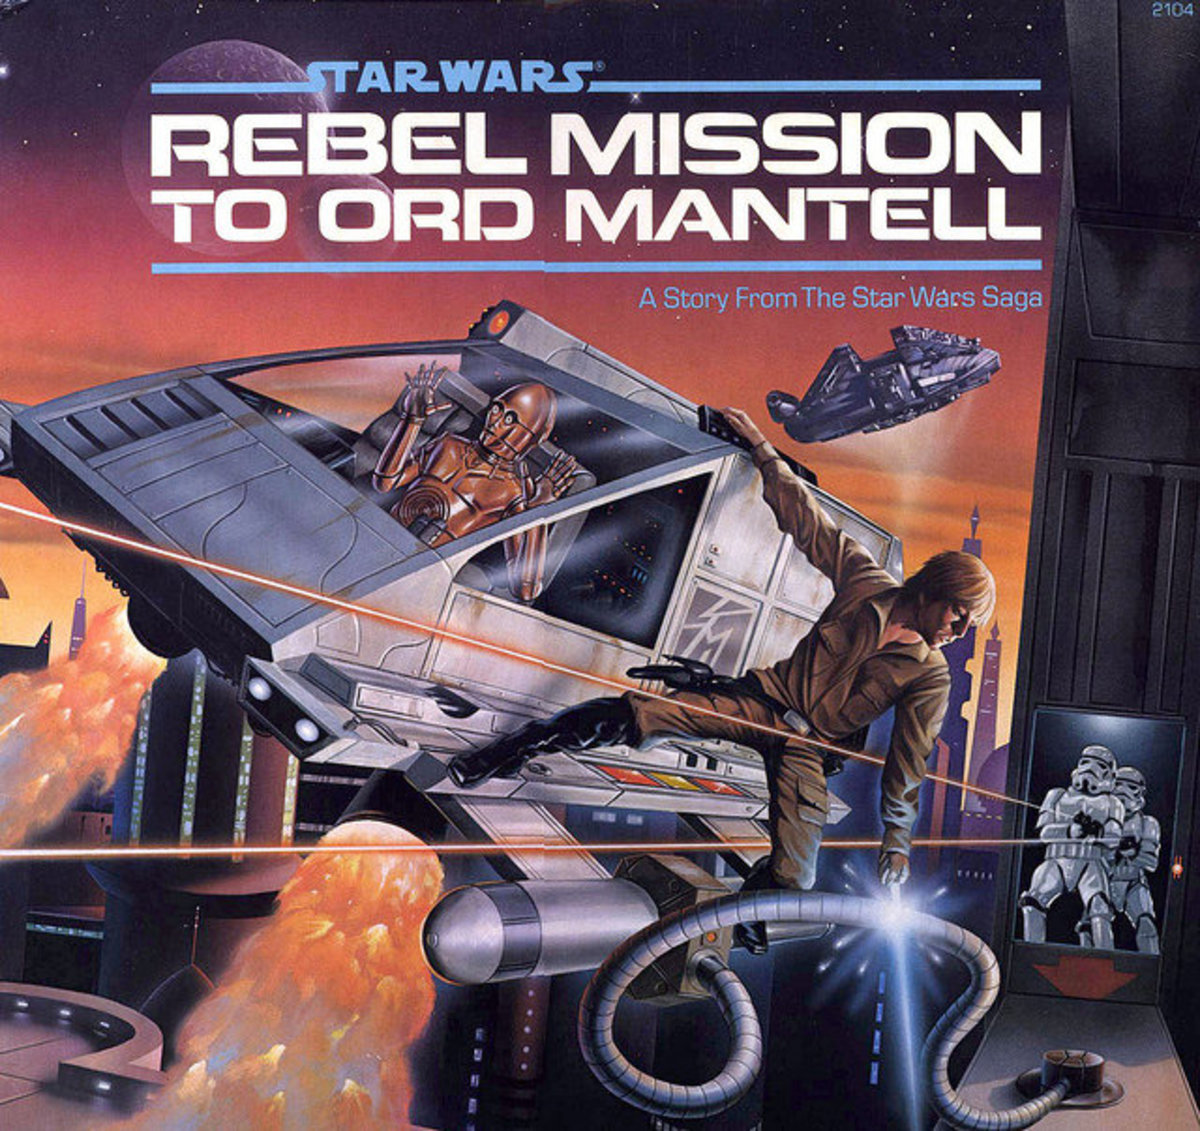 """Star Wars - Rebel Mission To Ord Mantell A Story From The Star Wars Saga Buena Vista Records 2104 12"""" LP Vinyl Record (1983)"""